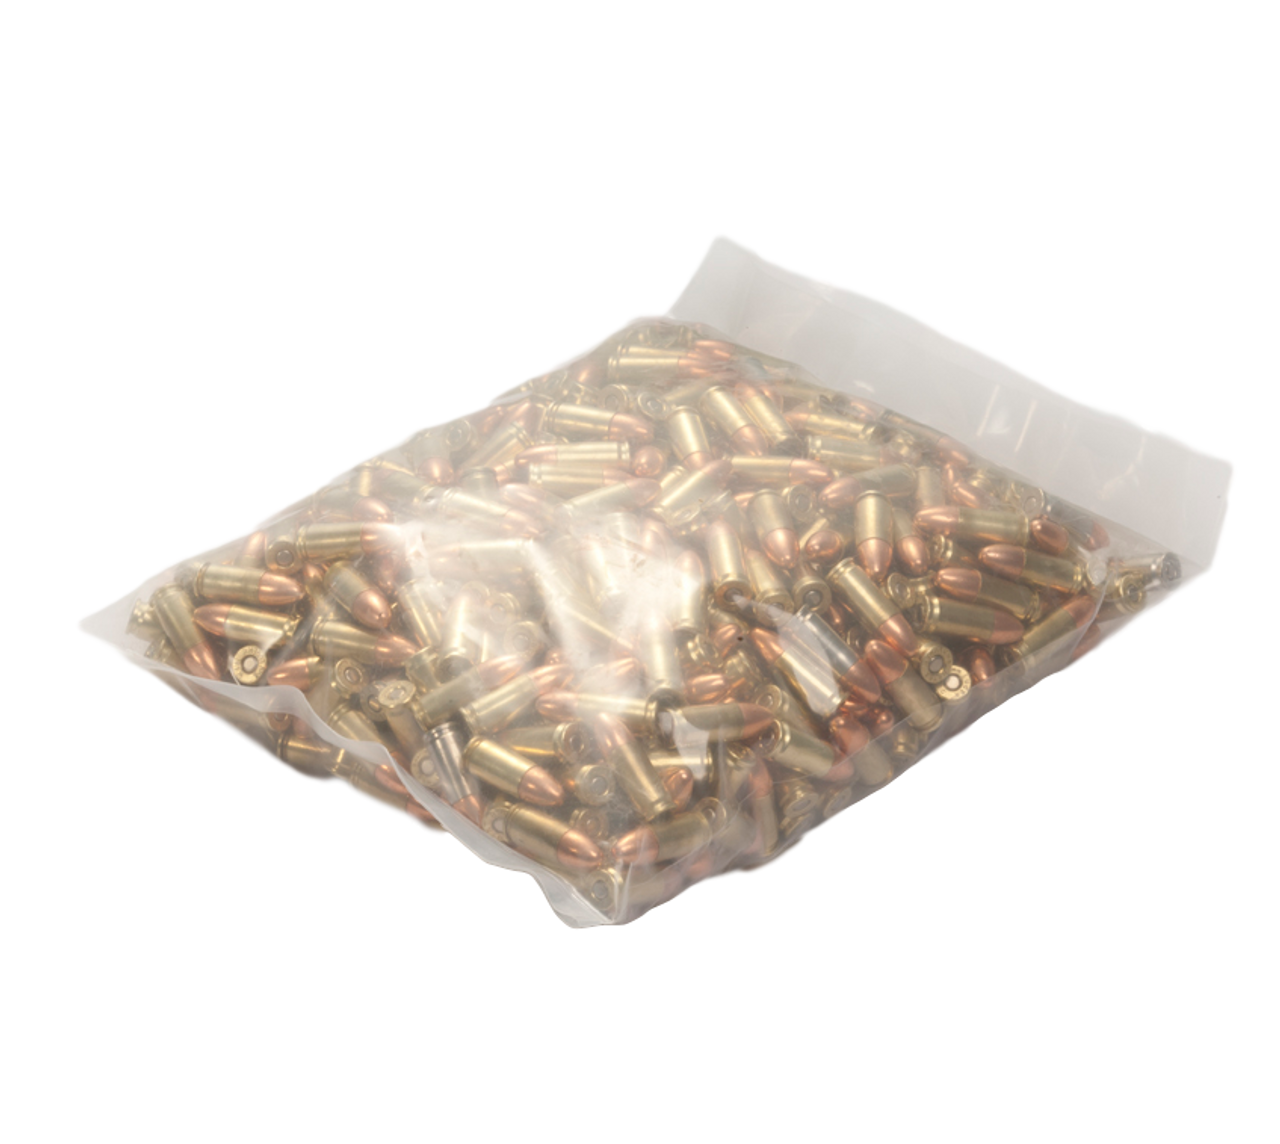 """9mm Luger """"Hush Puppy"""" 147 gr. FMJ subsonic """"Certified Select""""  (100-count box)"""